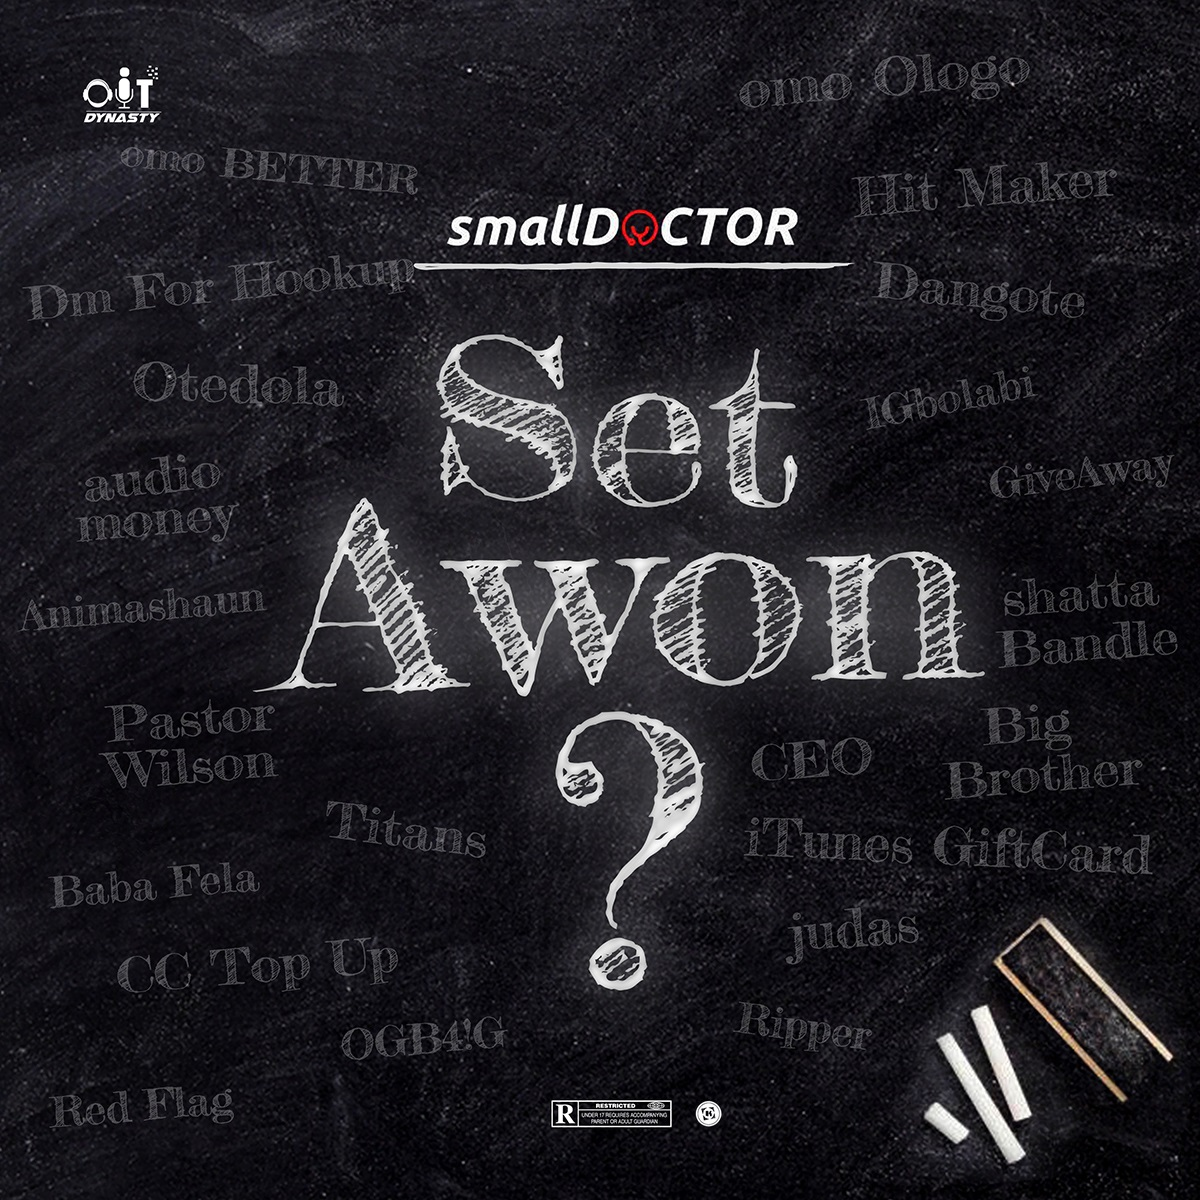 Small Doctor - Set Awon (Prod. By 2TBoyz)